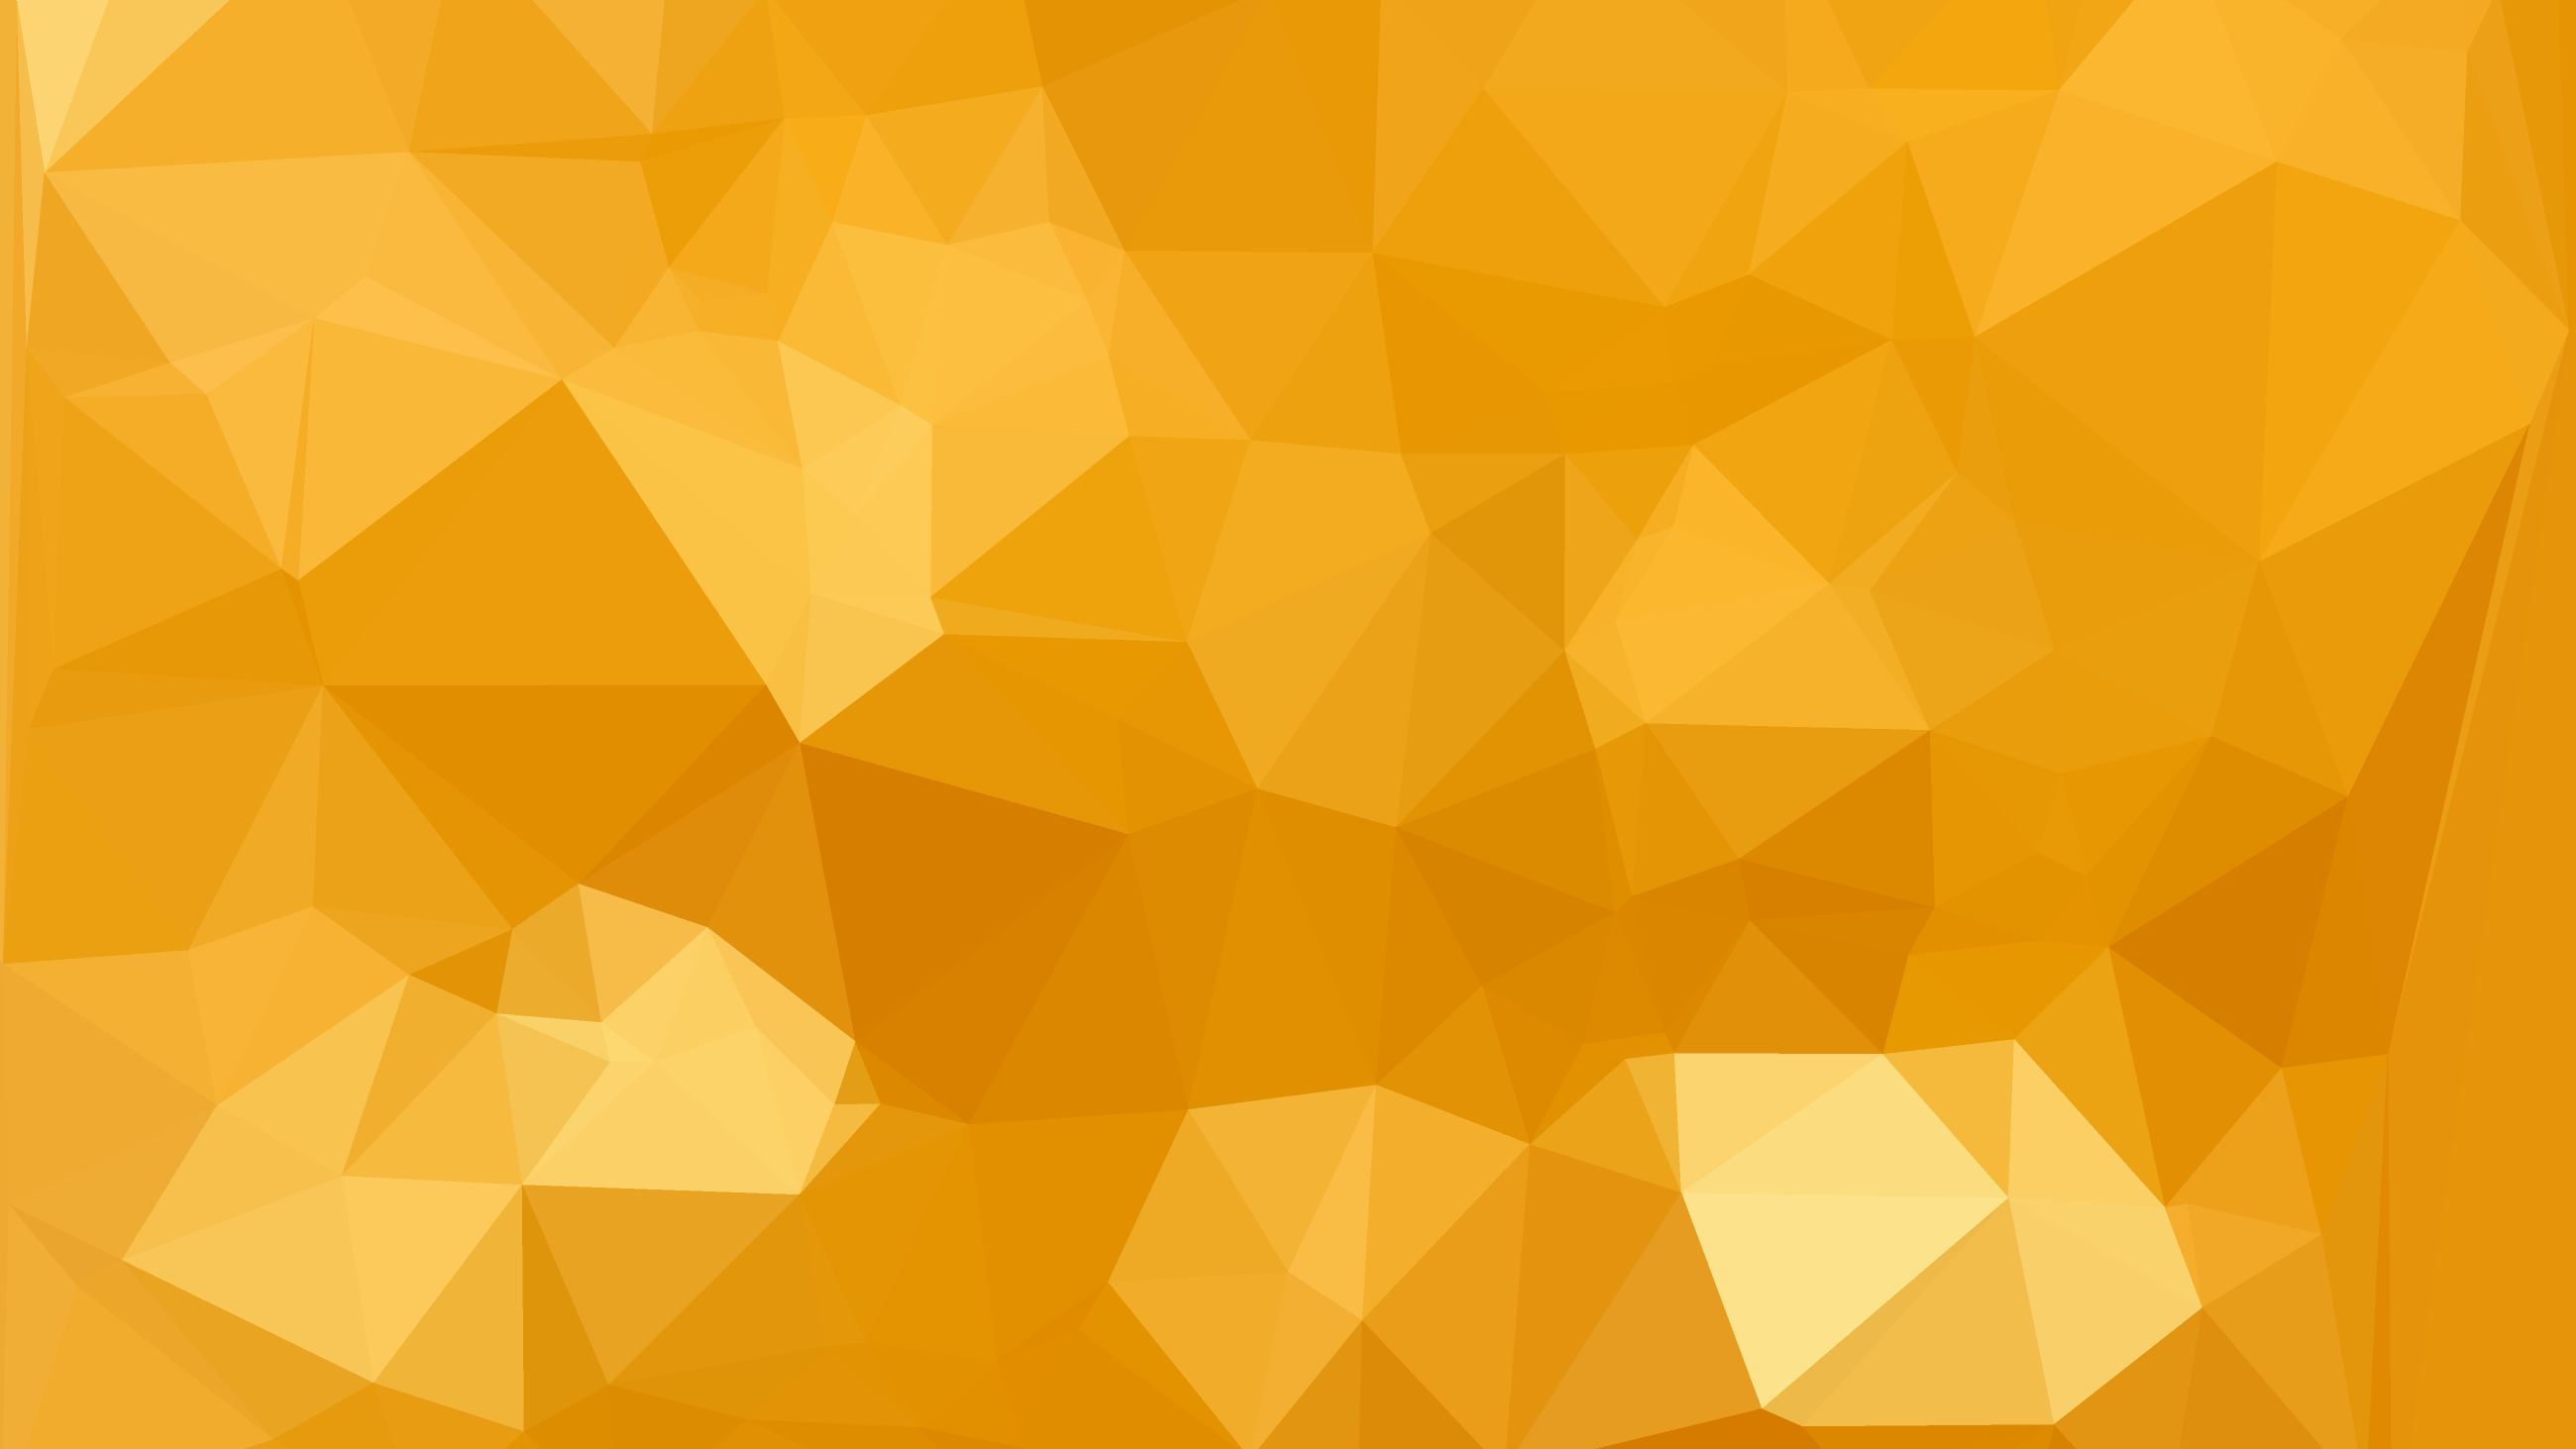 Wallpaper Geometric Gold 2K Collection 8 Wallpapers